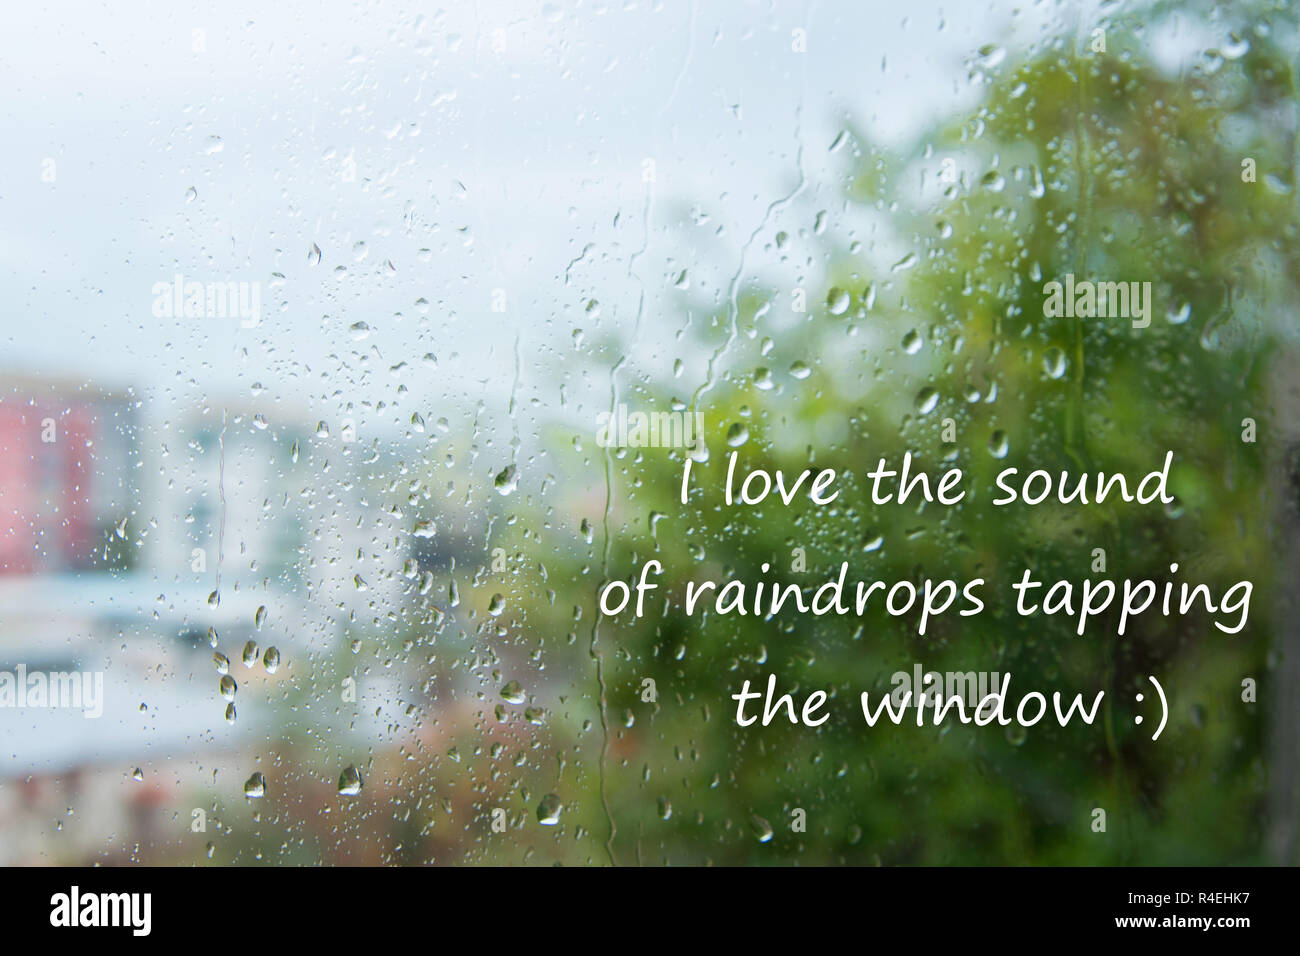 Rain drops on window with text - 'I love the sound of raindrops tapping the windows' - Stock Image